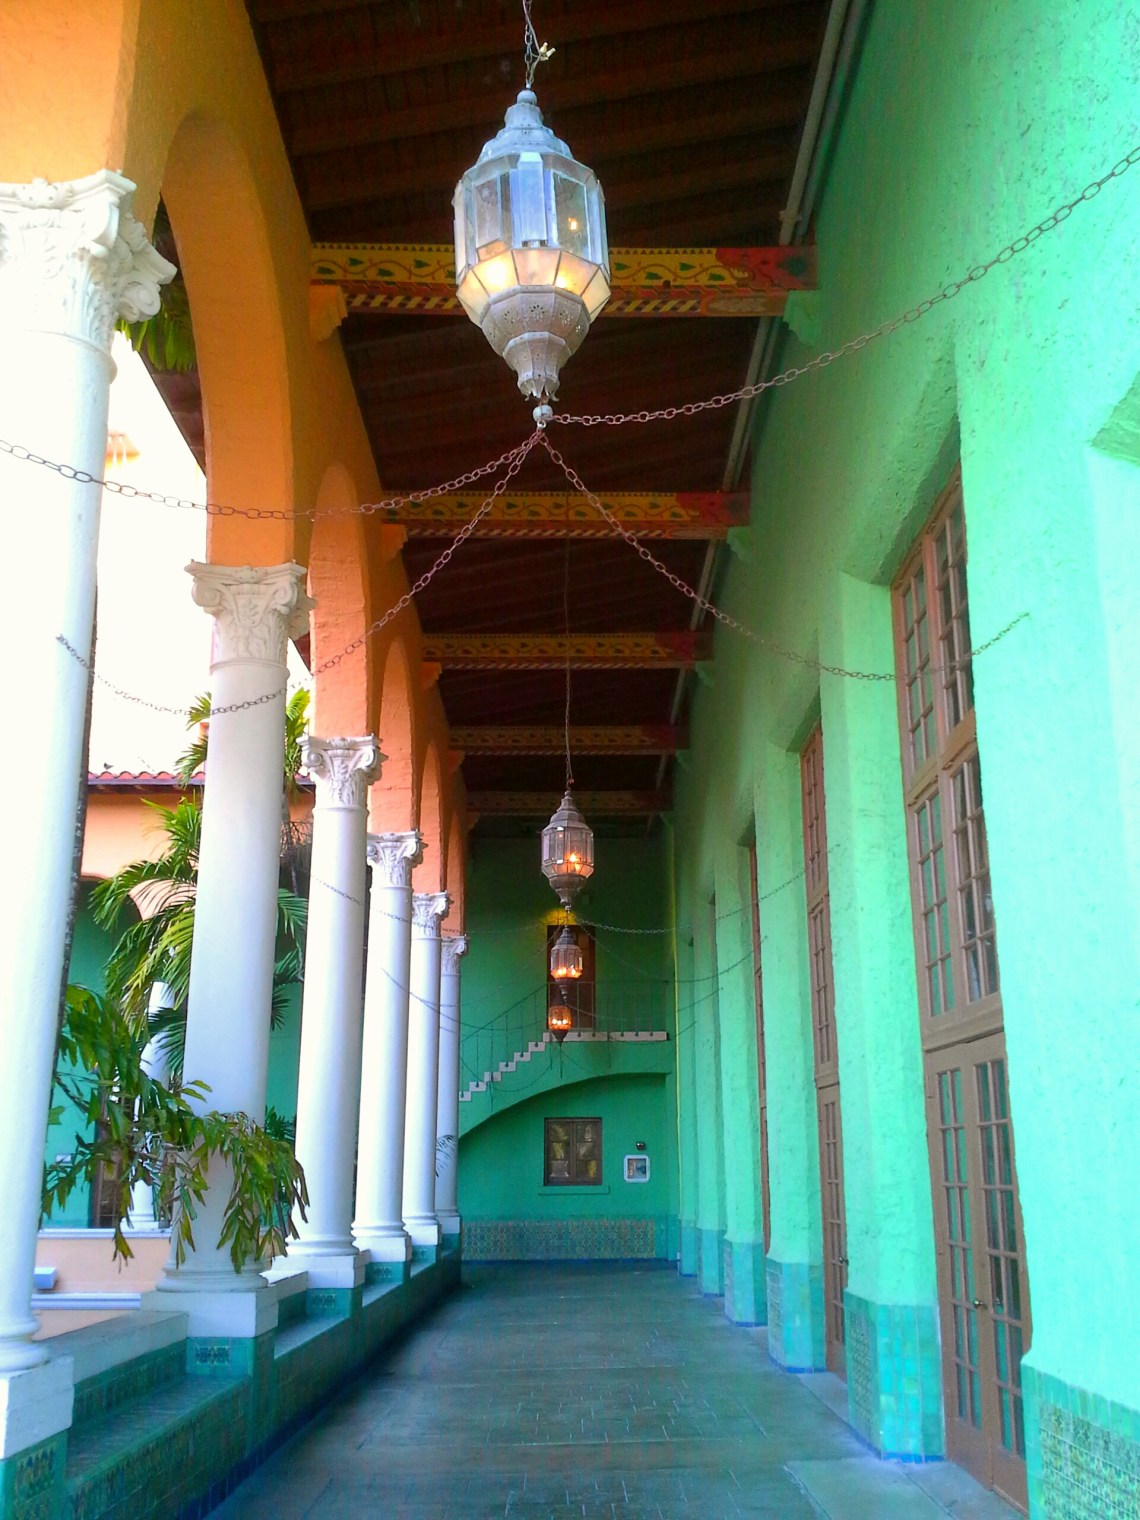 The Biltmore Hotel has an upper courtyard with a long corridor with bright green walls. This is a famous spot for engagement photos in South Florida.